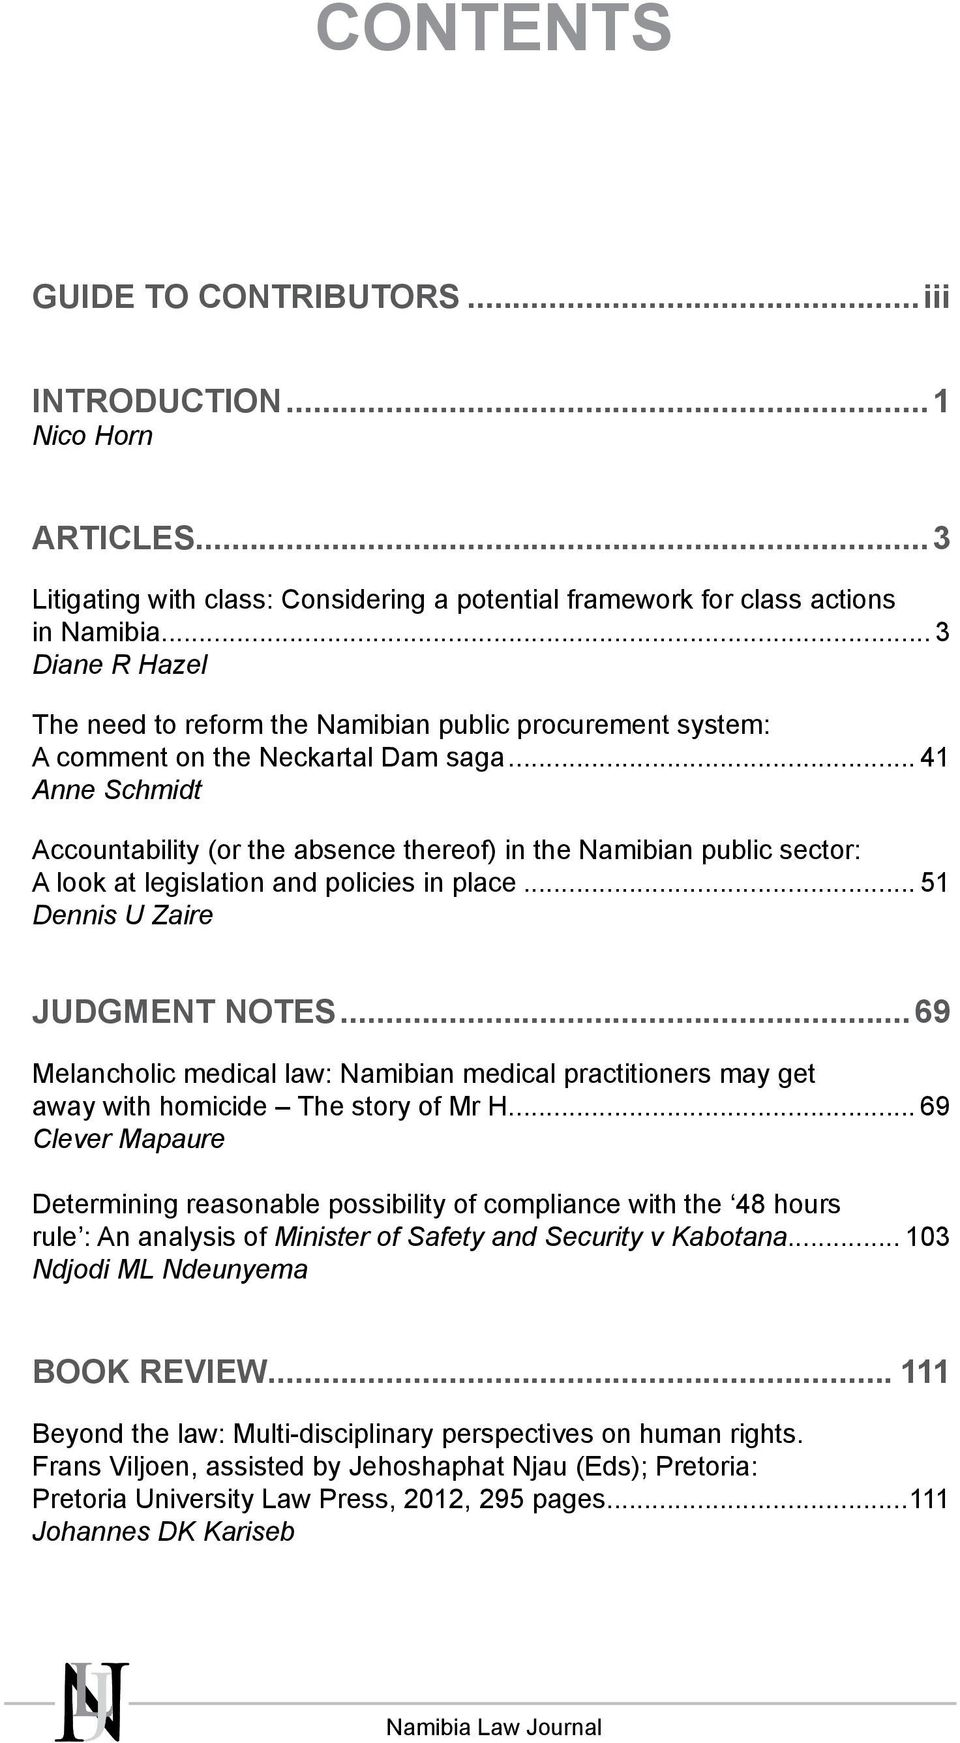 .. 41 Anne Schmidt Accountability (or the absence thereof) in the Namibian public sector: A look at legislation and policies in place... 51 Dennis U Zaire JUDGMENT NOTES.